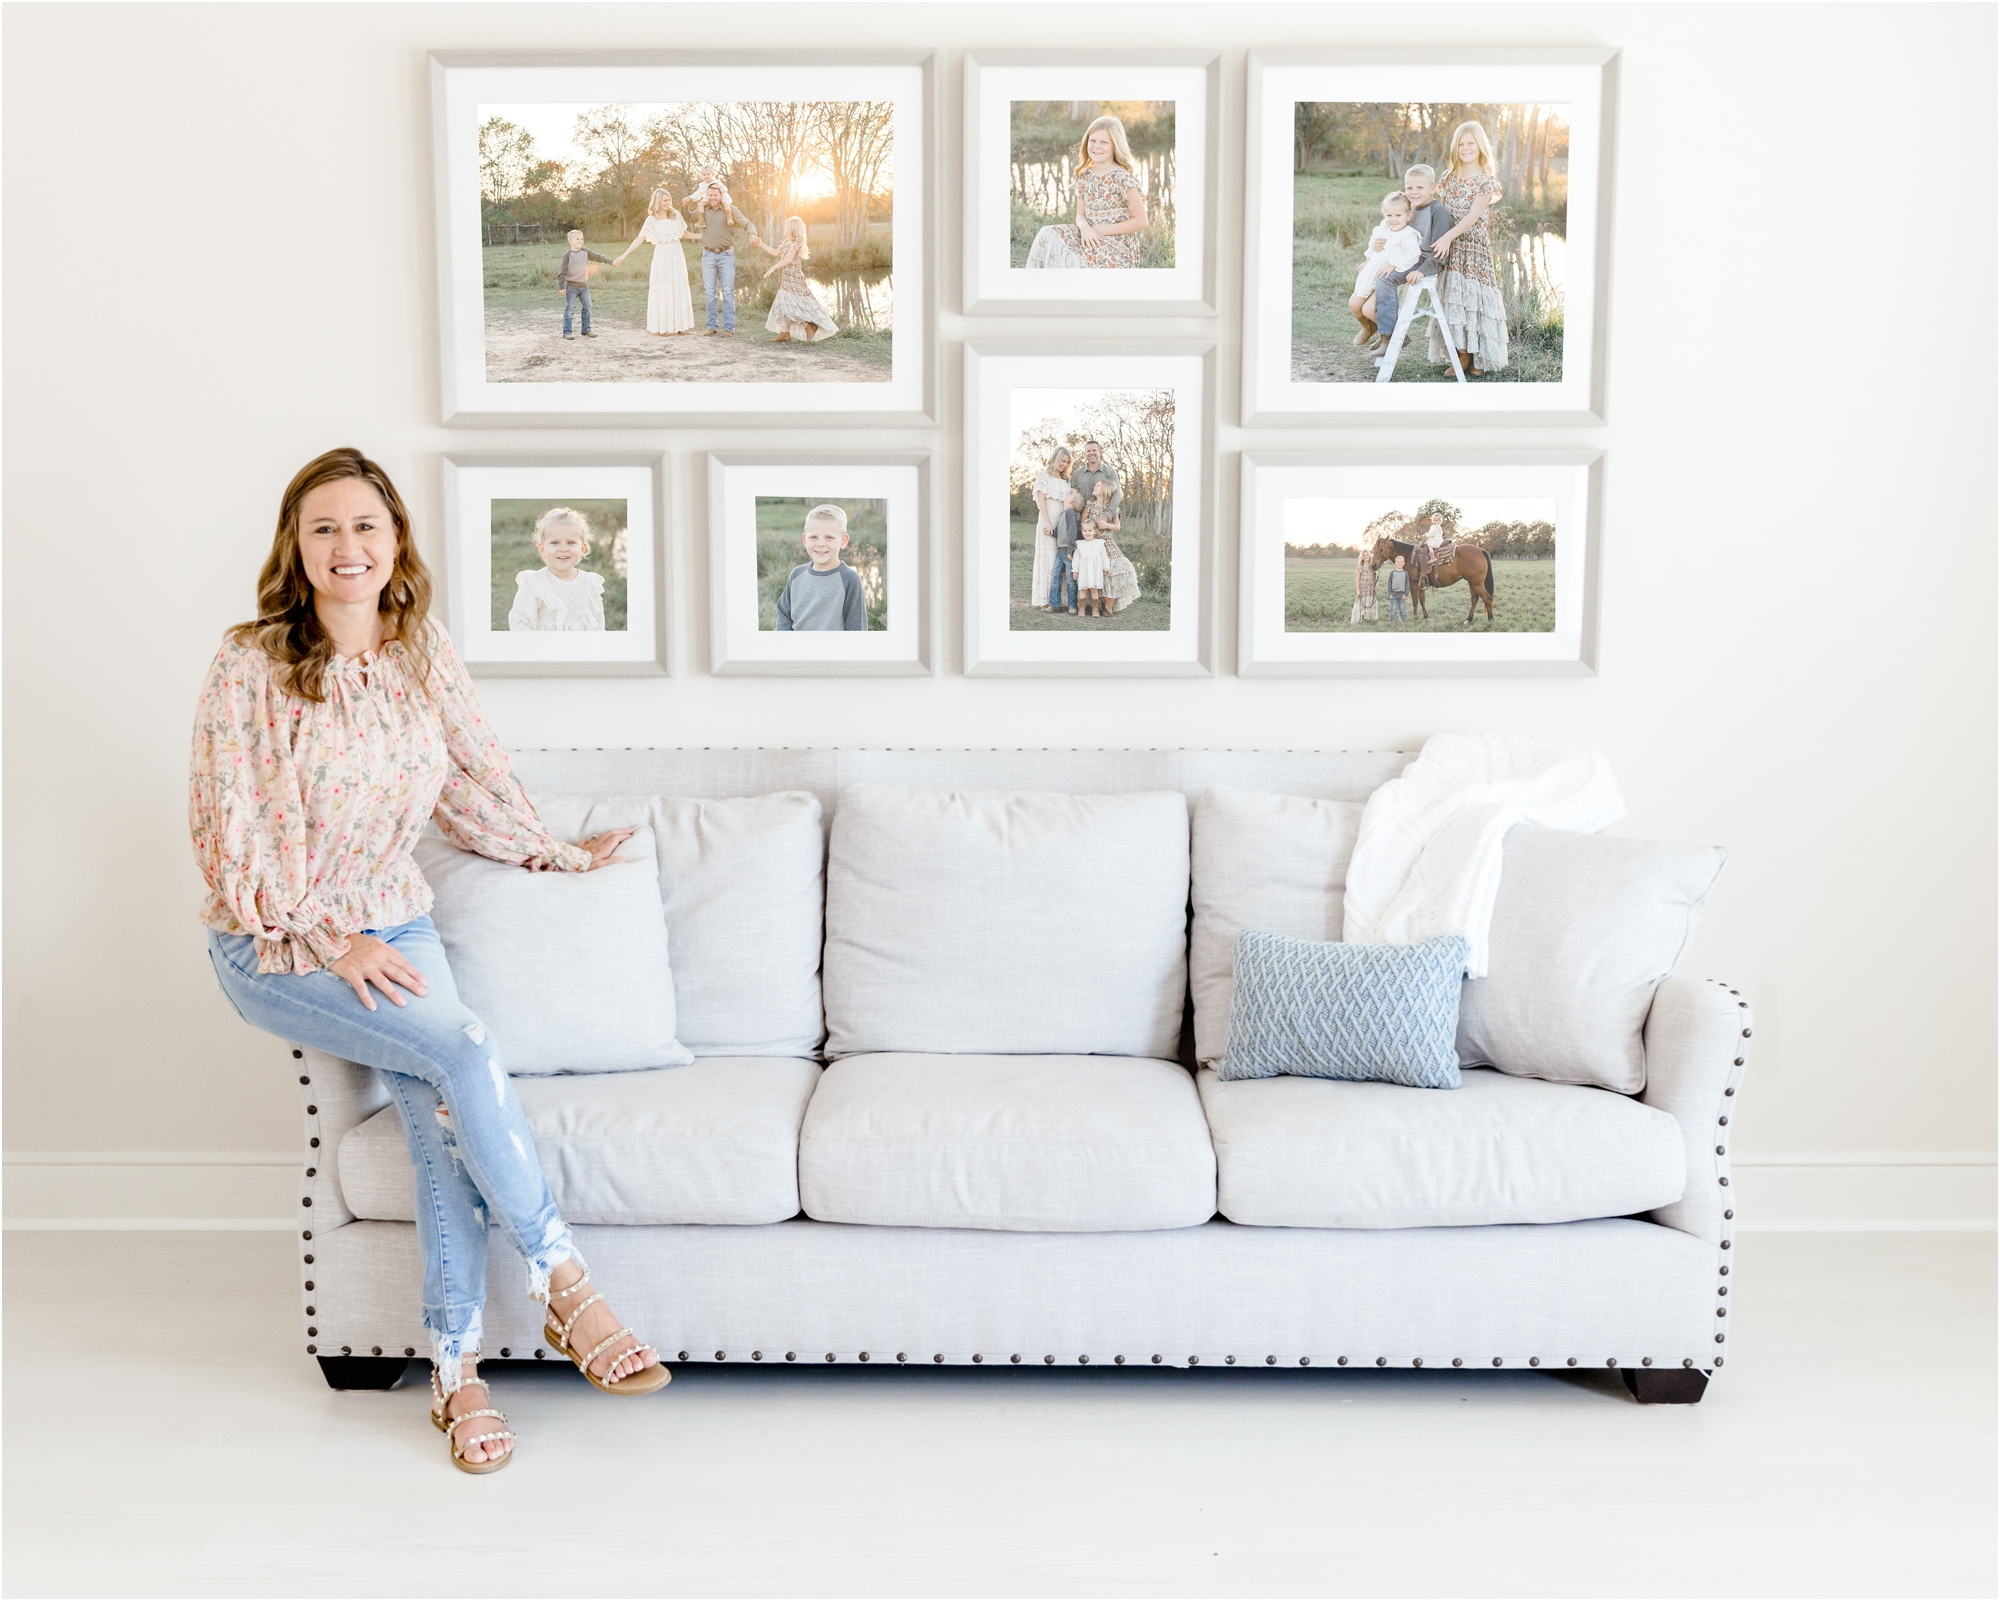 Image of full service newborn and family photographer, Kelly of Lifetime of Clicks Photography, in studio with large gallery wall.